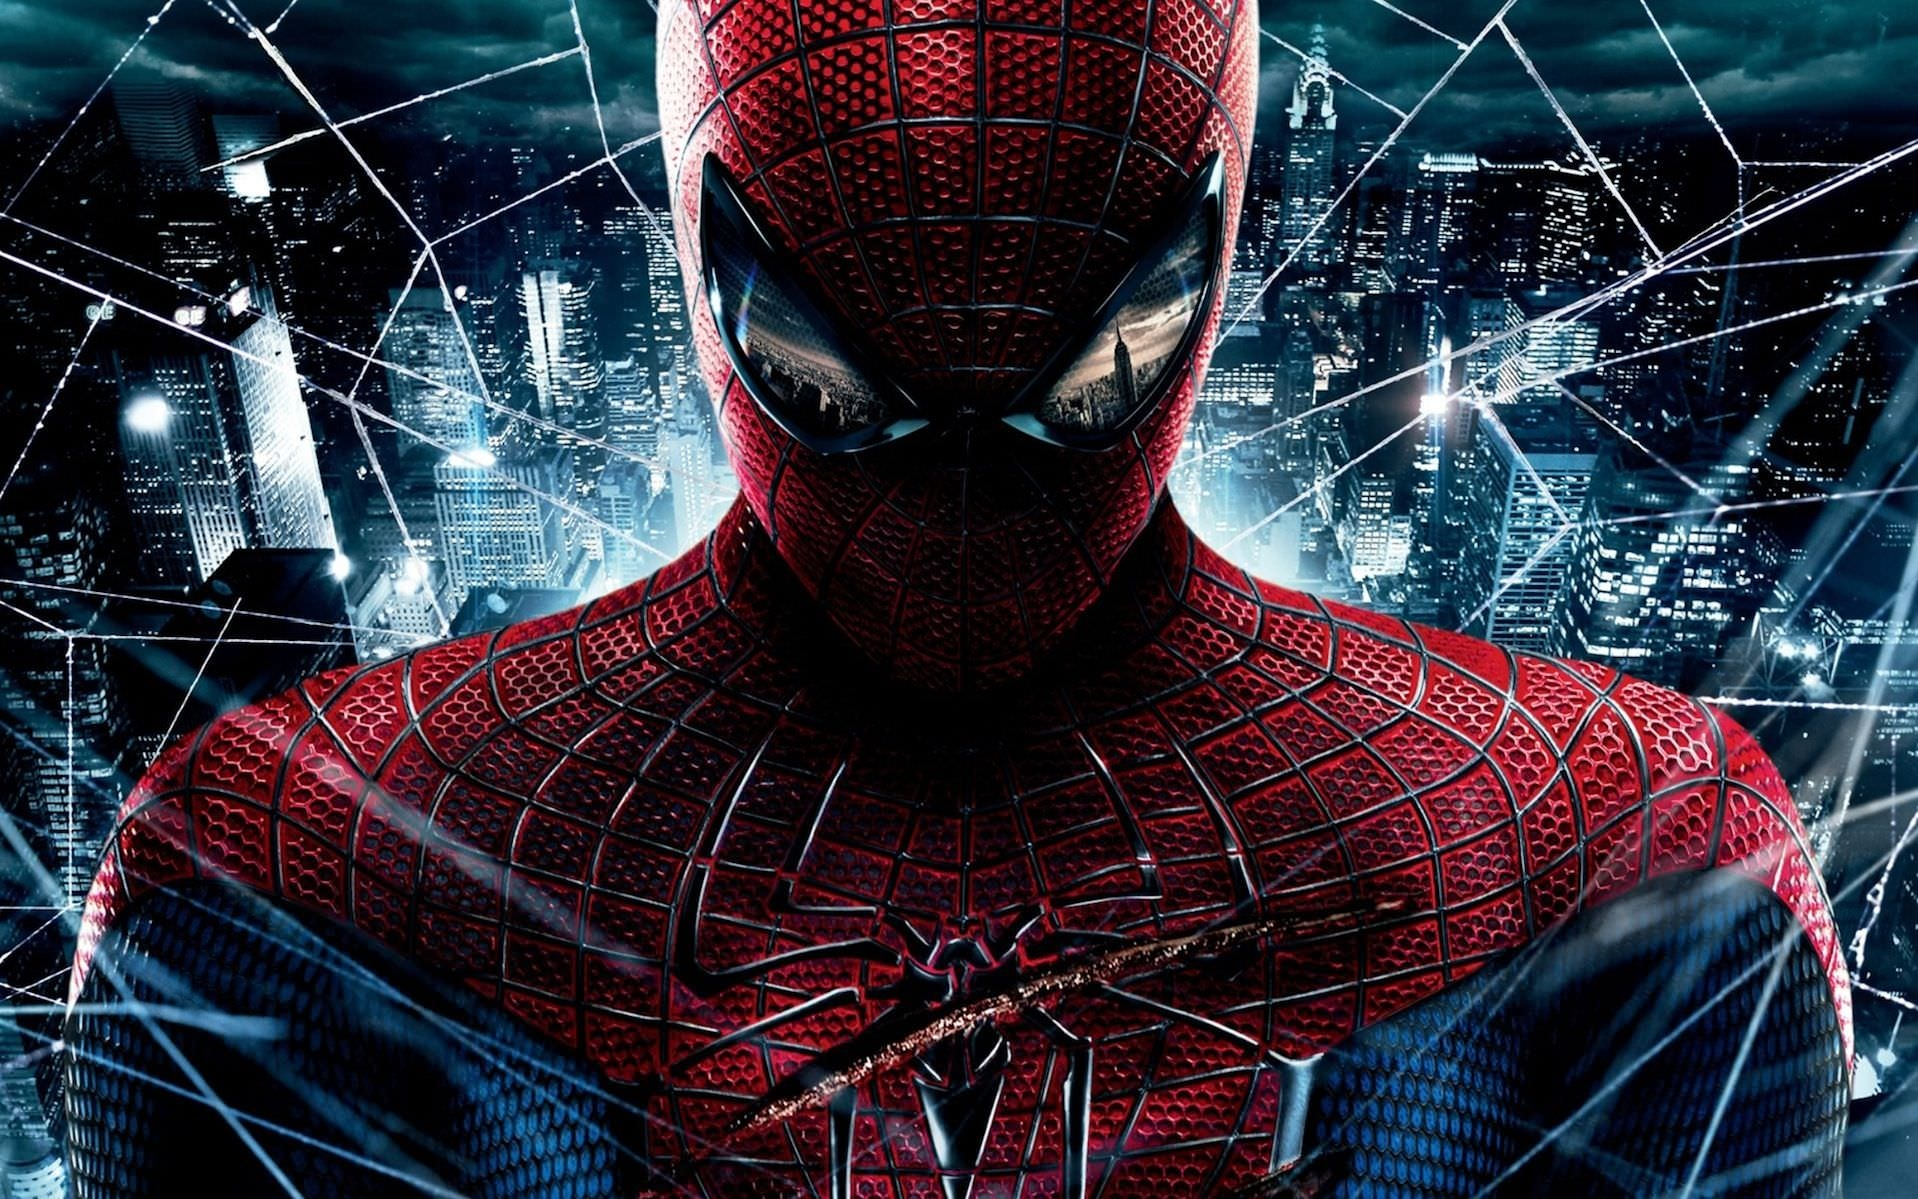 Spiderman HD Wallpaper For Download